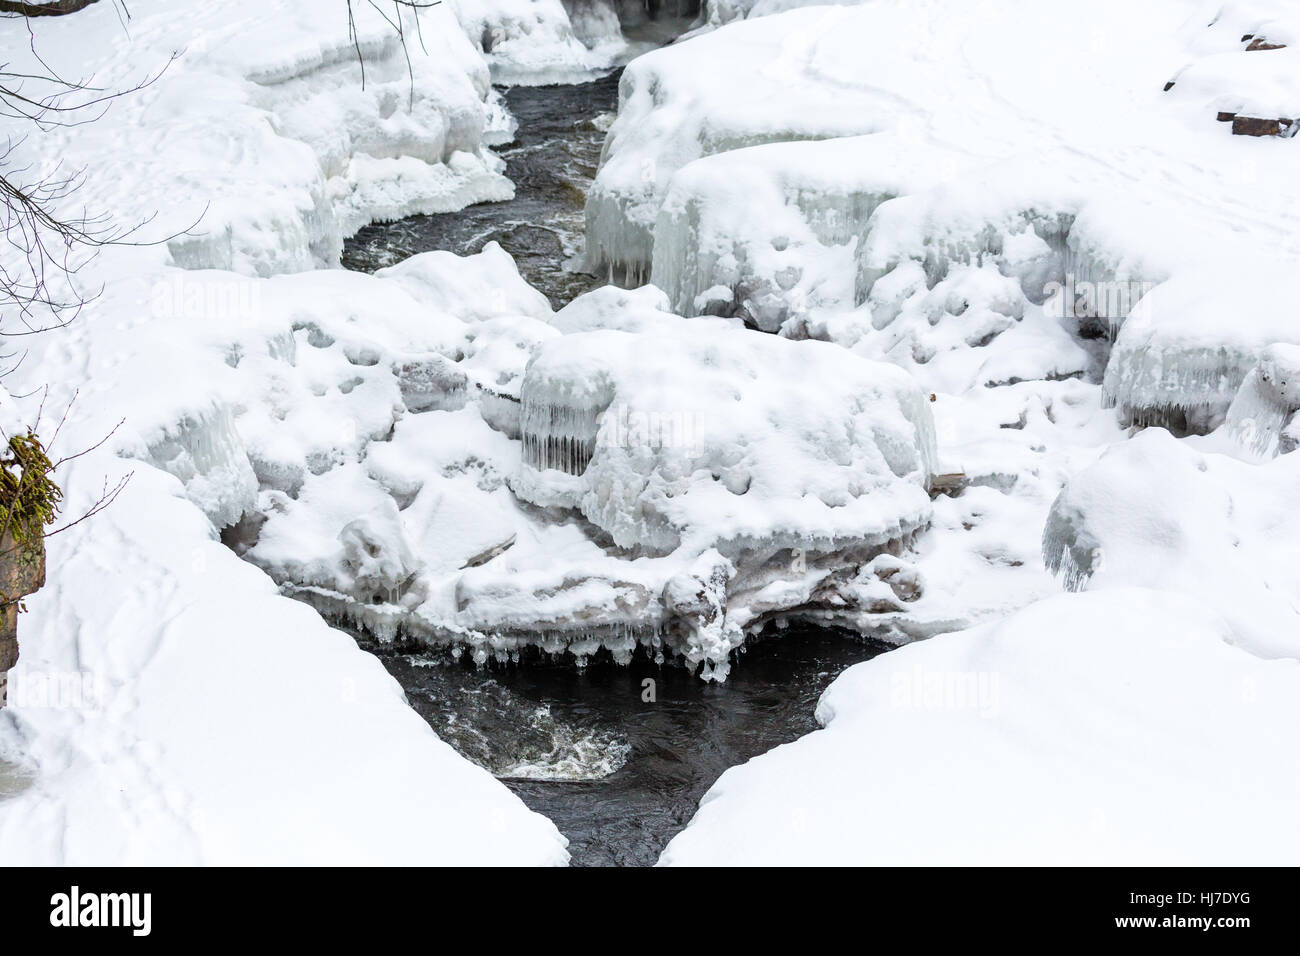 River encased in snow and ice with animal tracks. - Stock Image